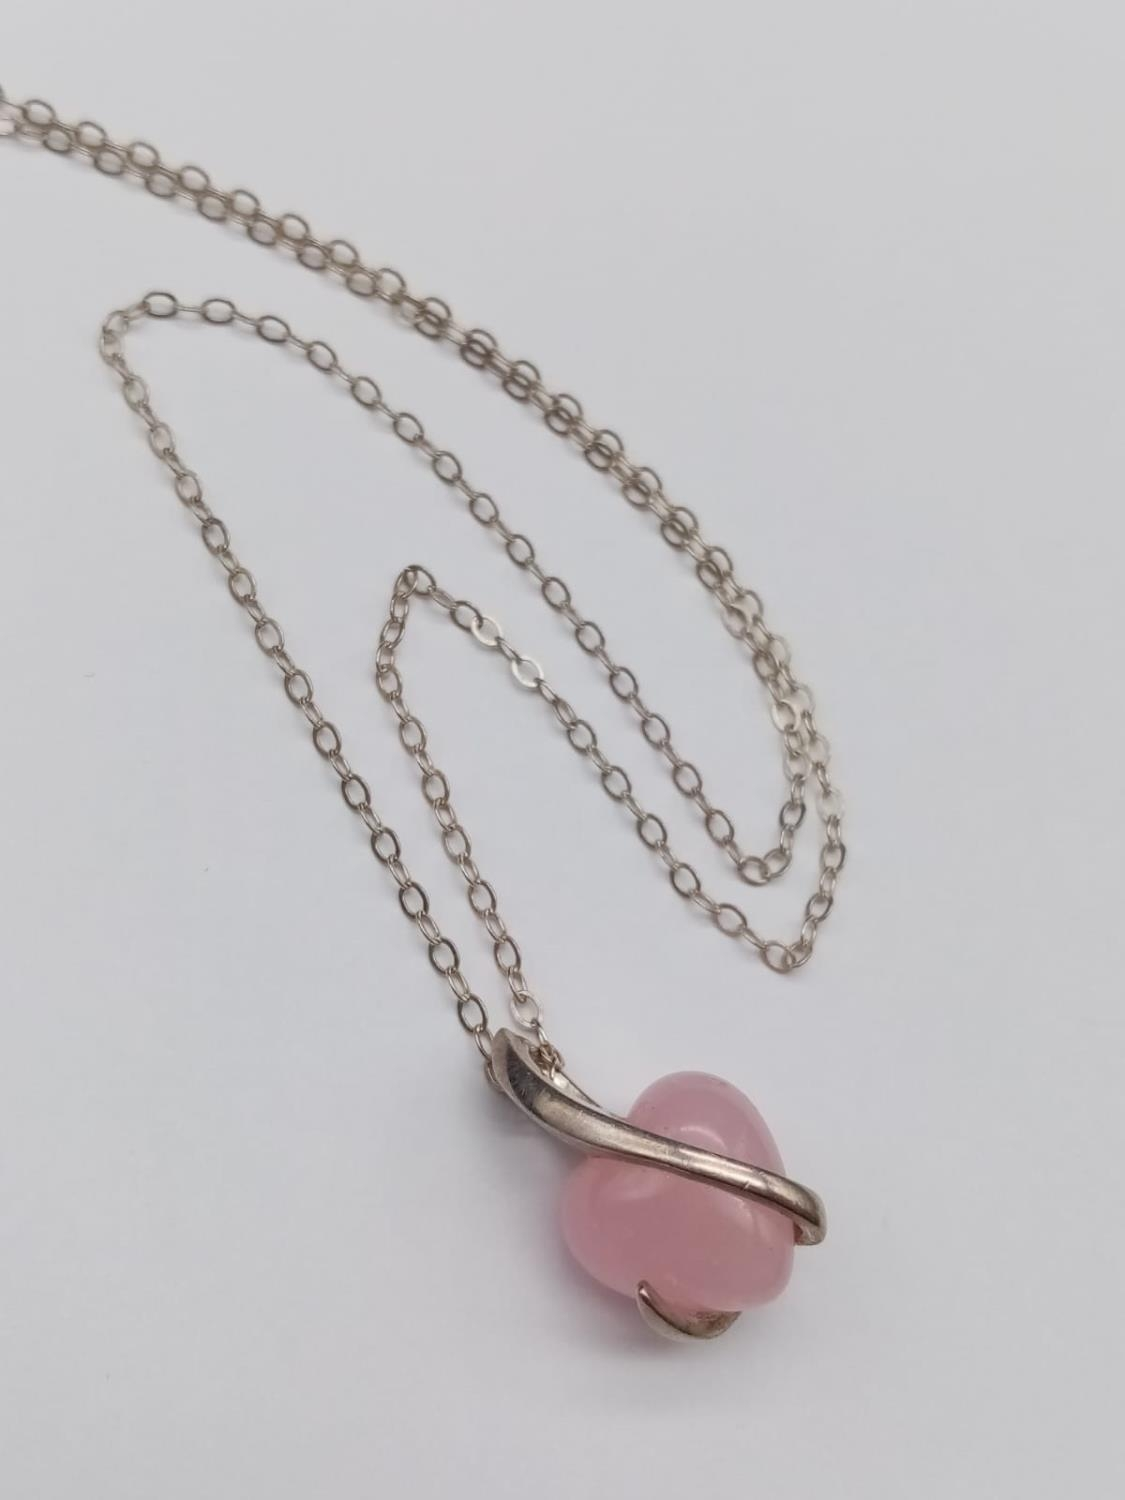 Silver Stone Set Pendant Necklace on 16 inch Sterling Silver Chain in a presentation box. 5g